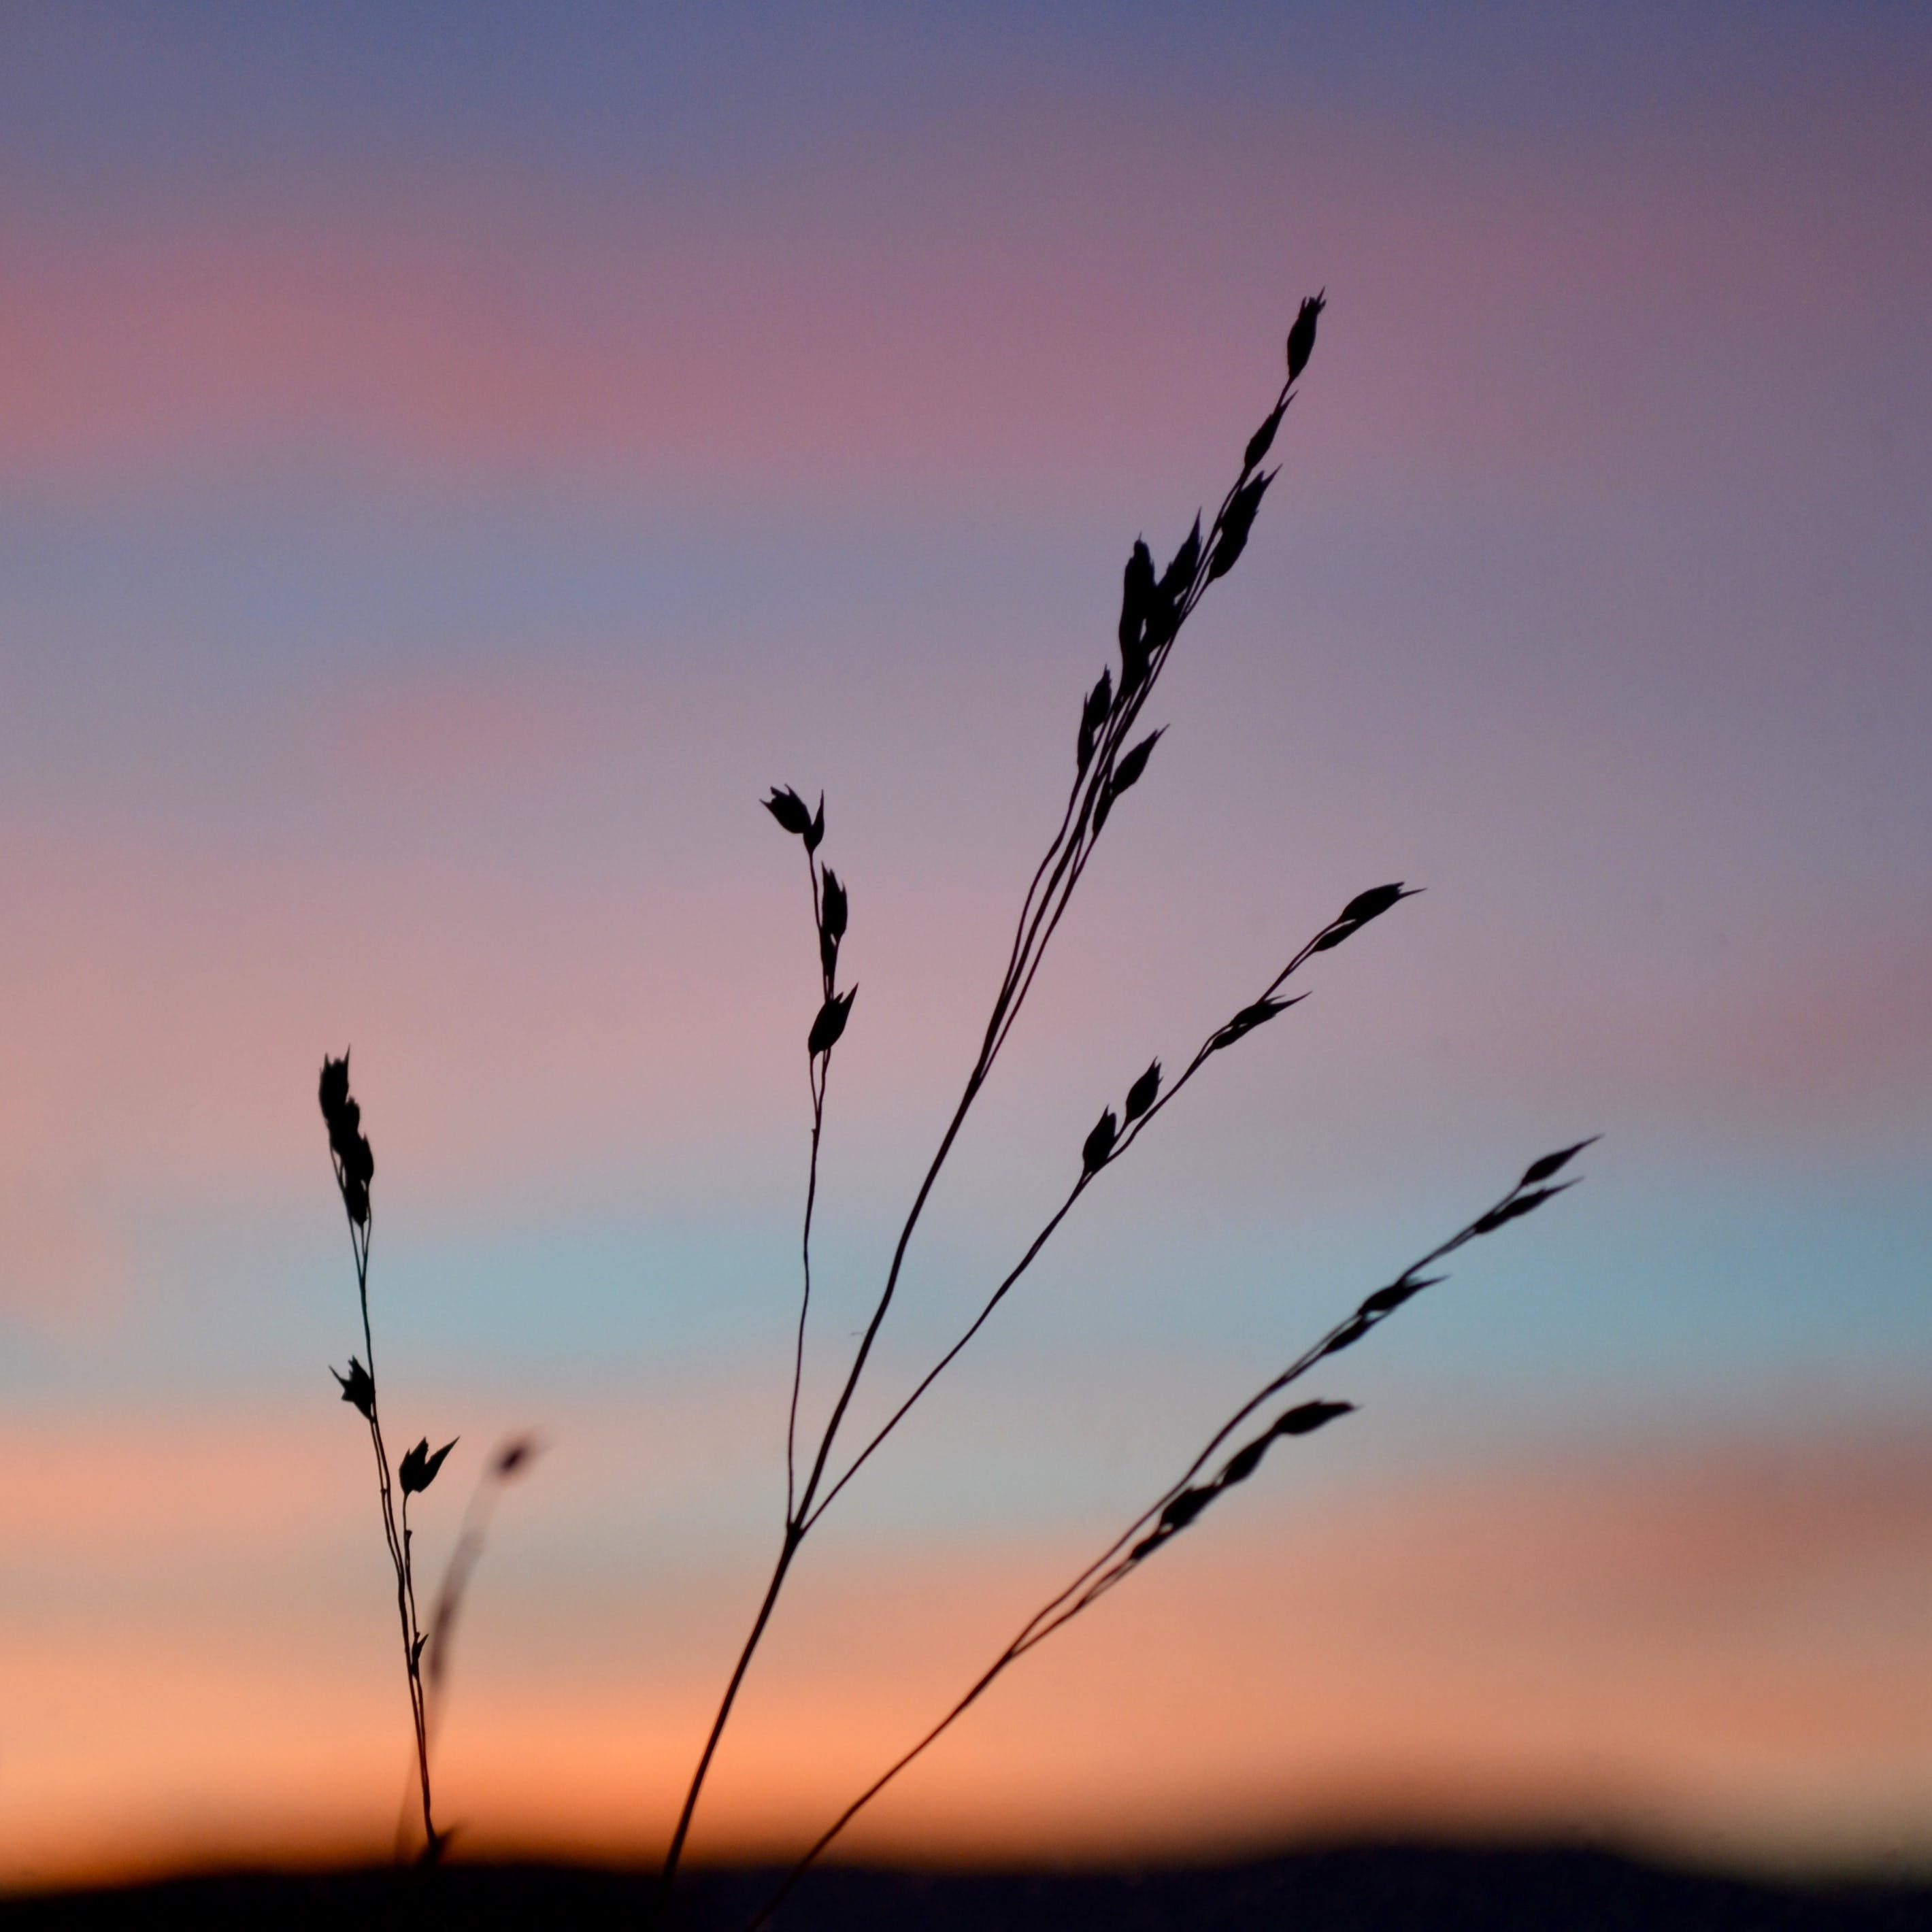 Free stock photo of sky, sunset, grain